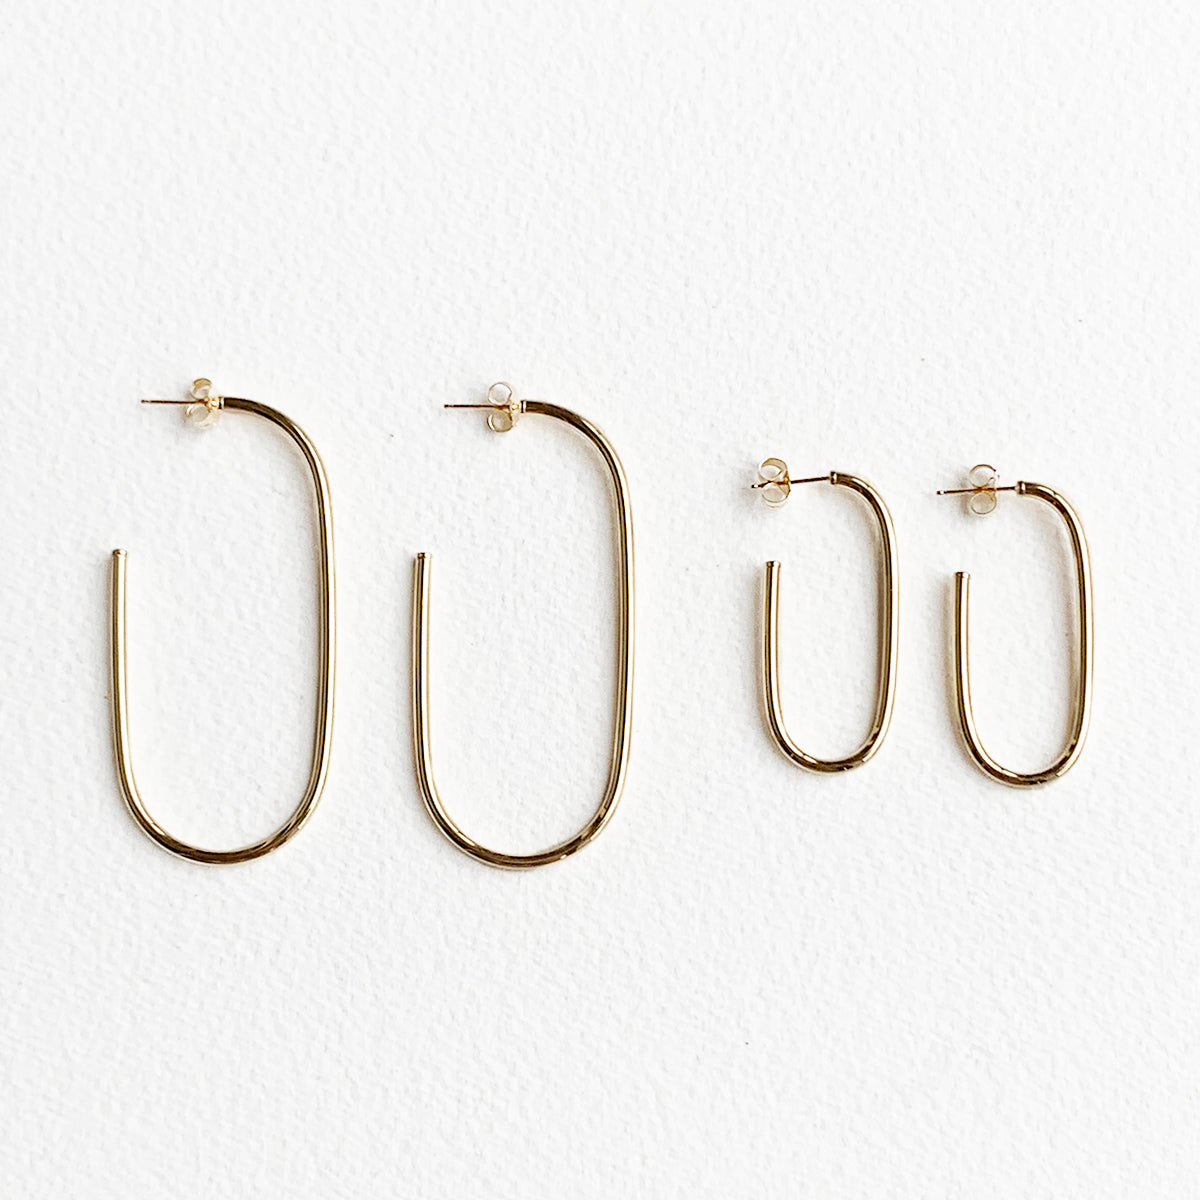 Sabine Oval Hoops in 14k Gold